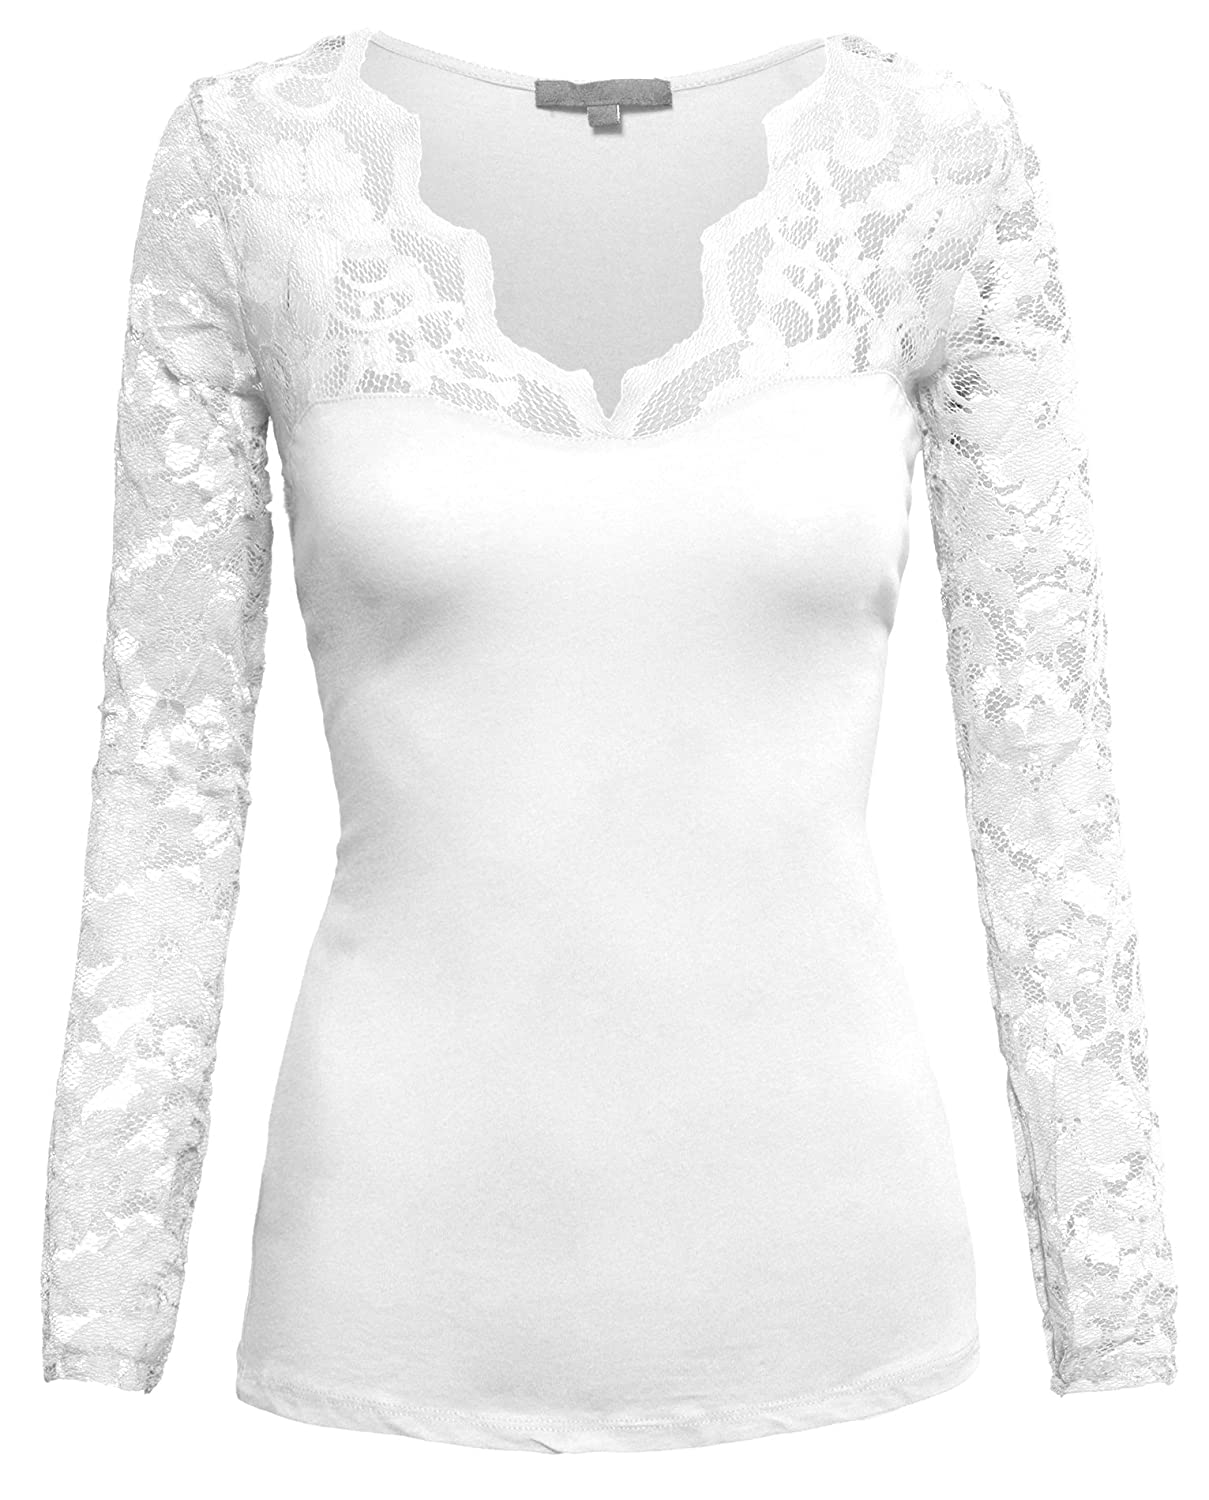 HOT FROM HOLLYWOOD Women's Fitted Cotton Casual Scalloped Floral Lace V Neck Long Sleeve Shirt Top Snow White X-Large 65641-TOP-AMB-WMS-SnwWht-XL